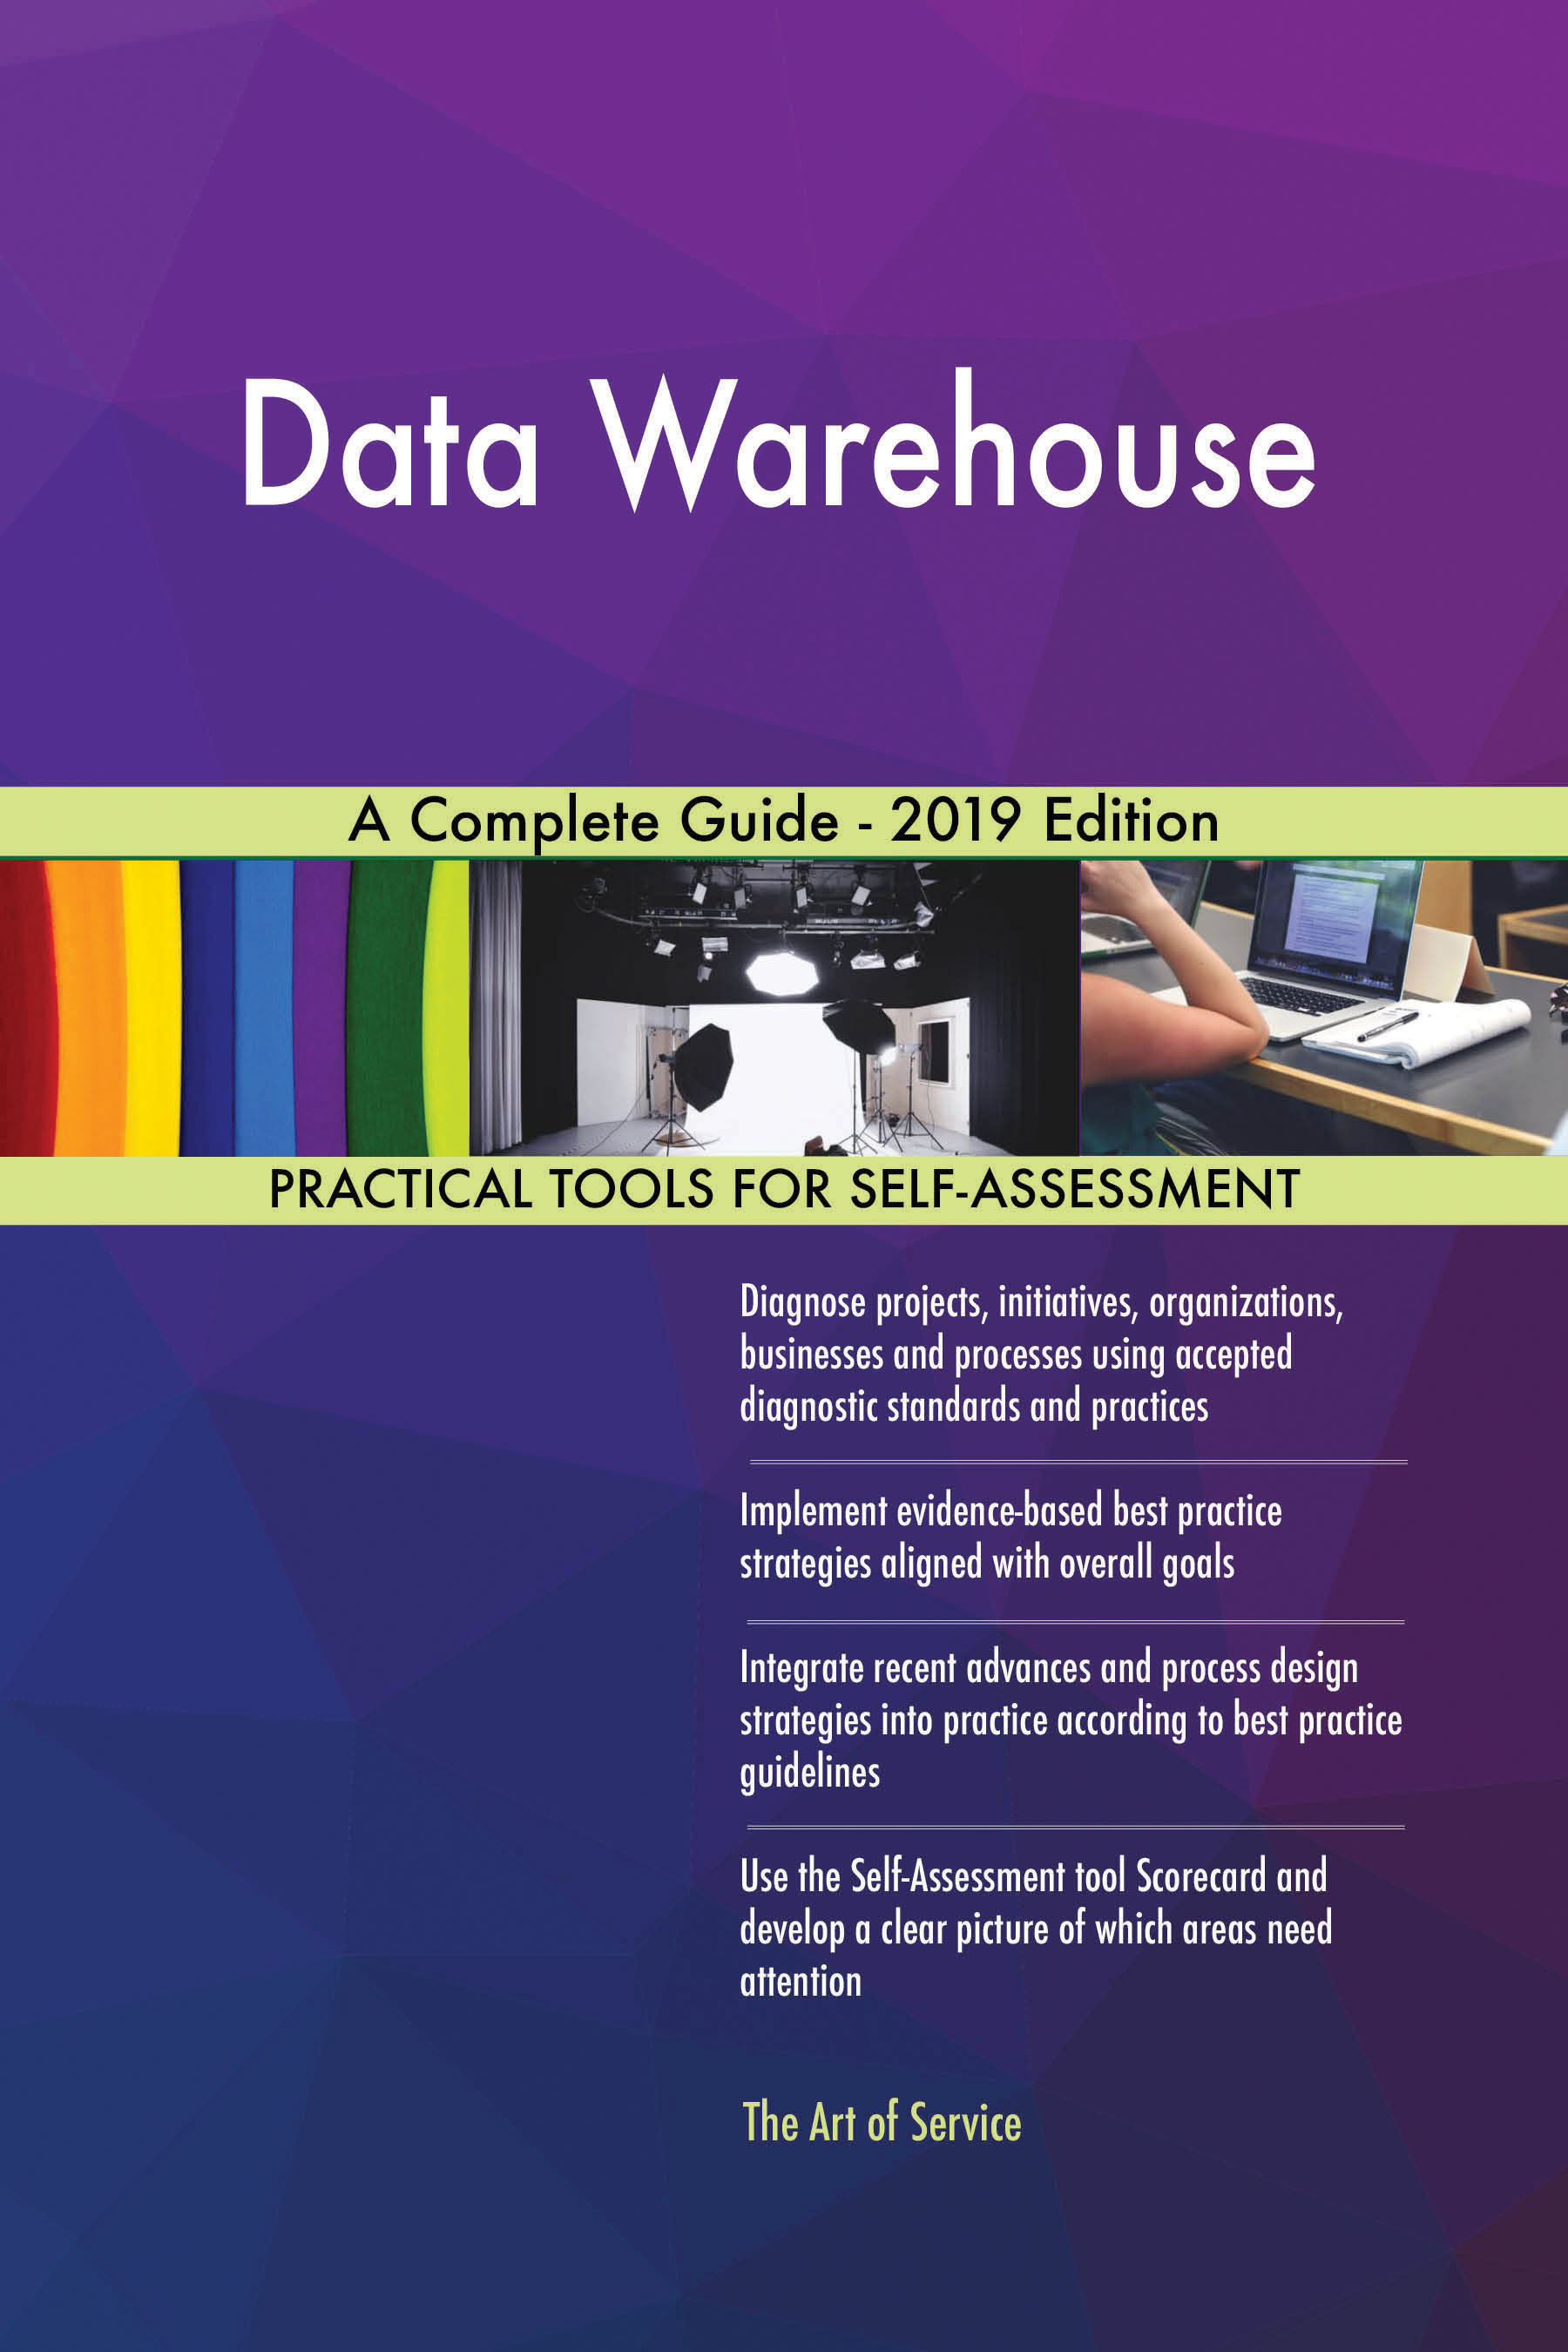 Data Warehouse A Complete Guide - 2019 Edition | BUKU - Study ...